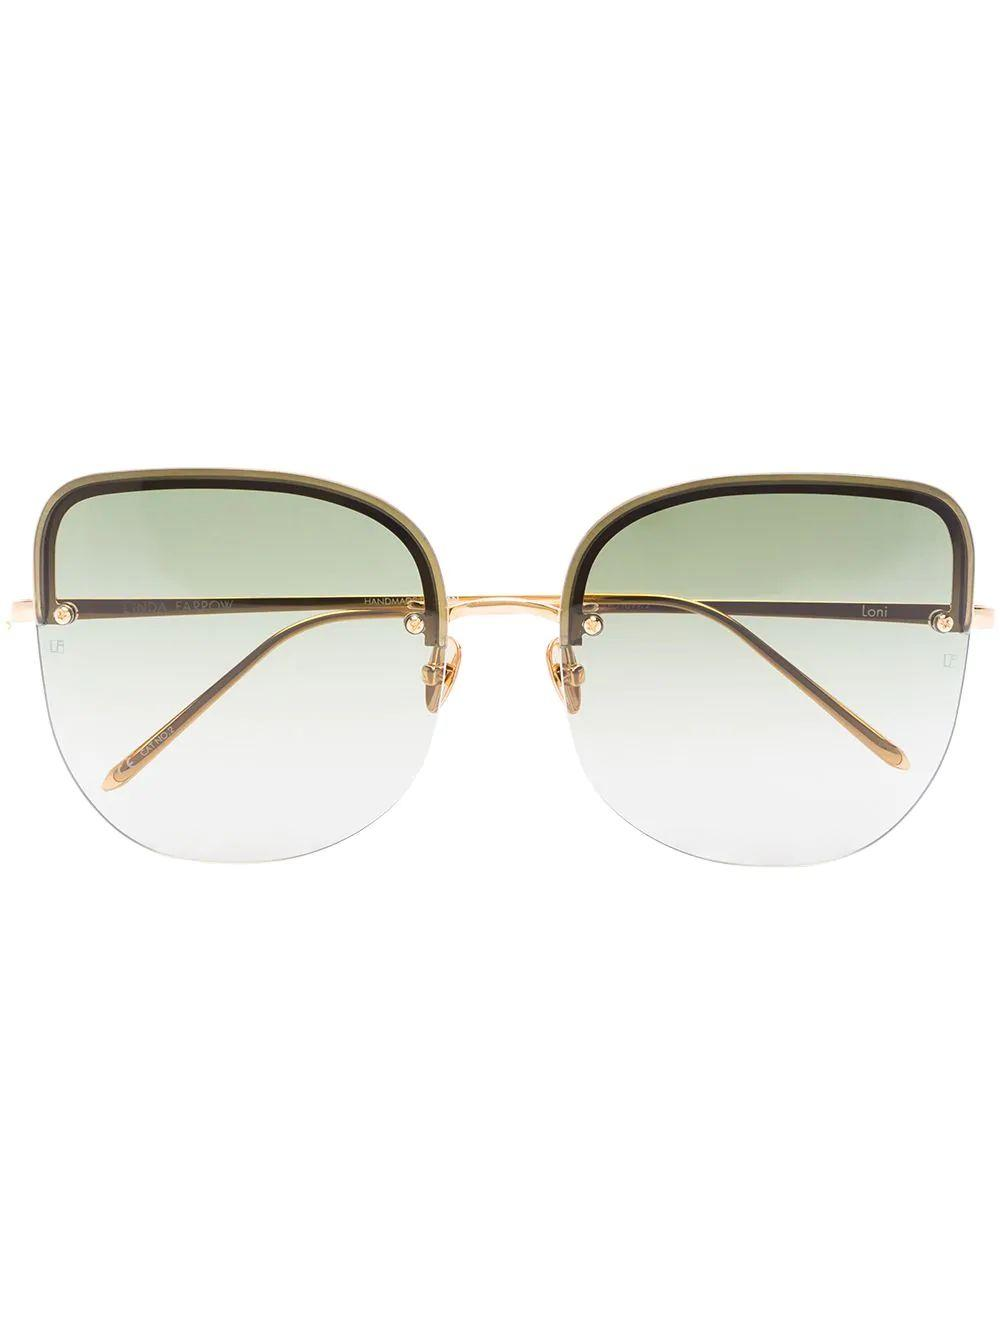 Loni 18kt Gold-Plated Sunglasses